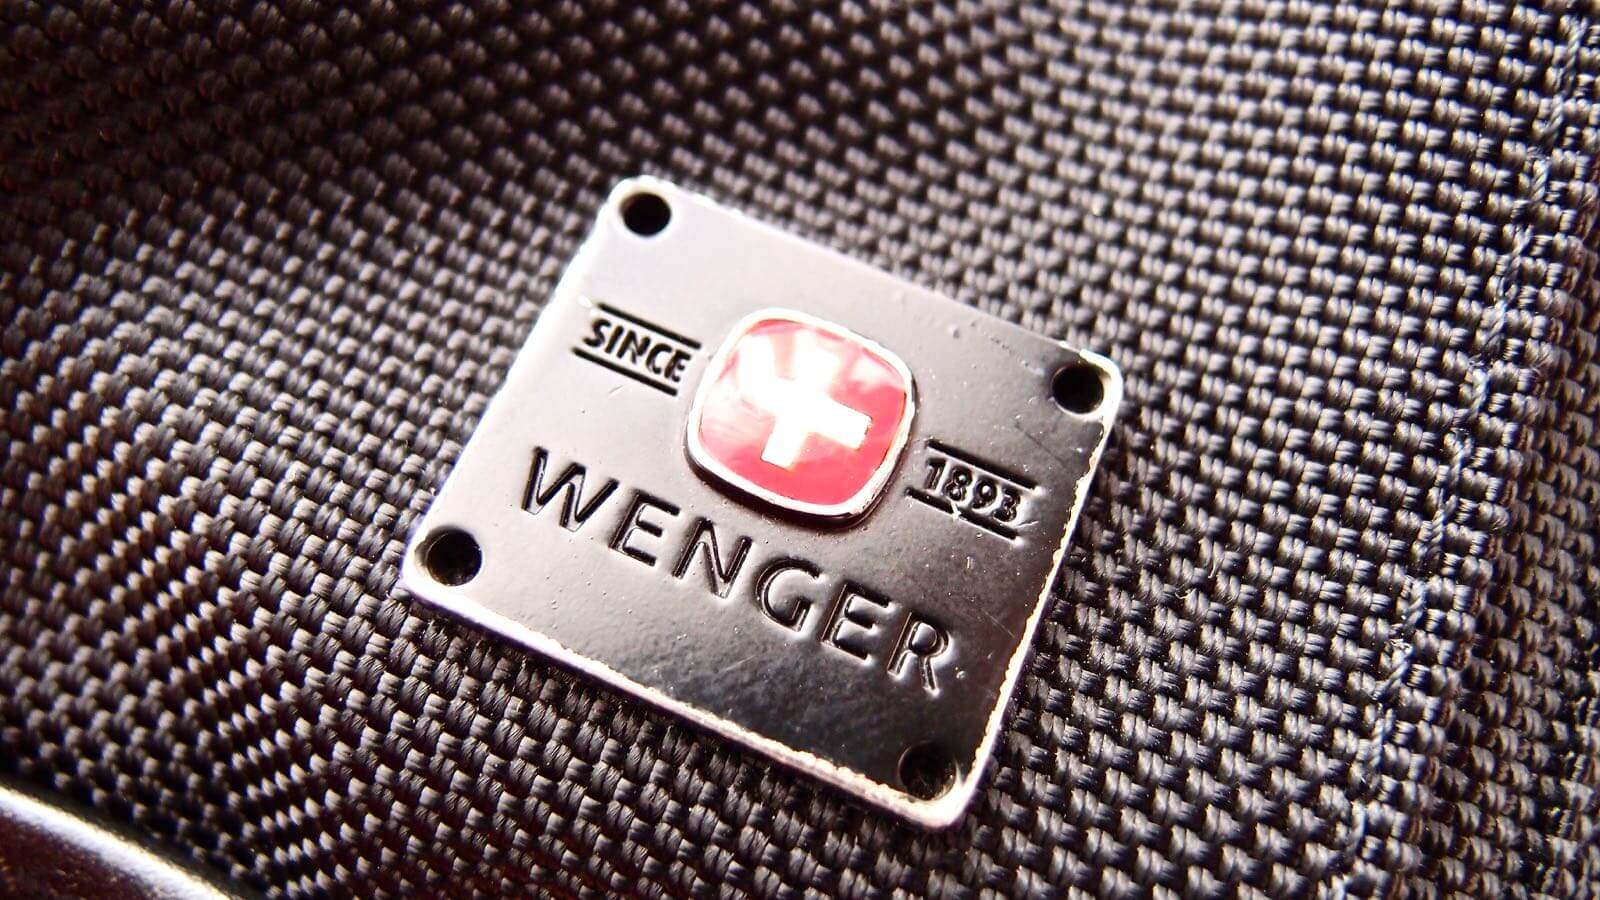 0109 WENGER Anglyph II Bag Review 02